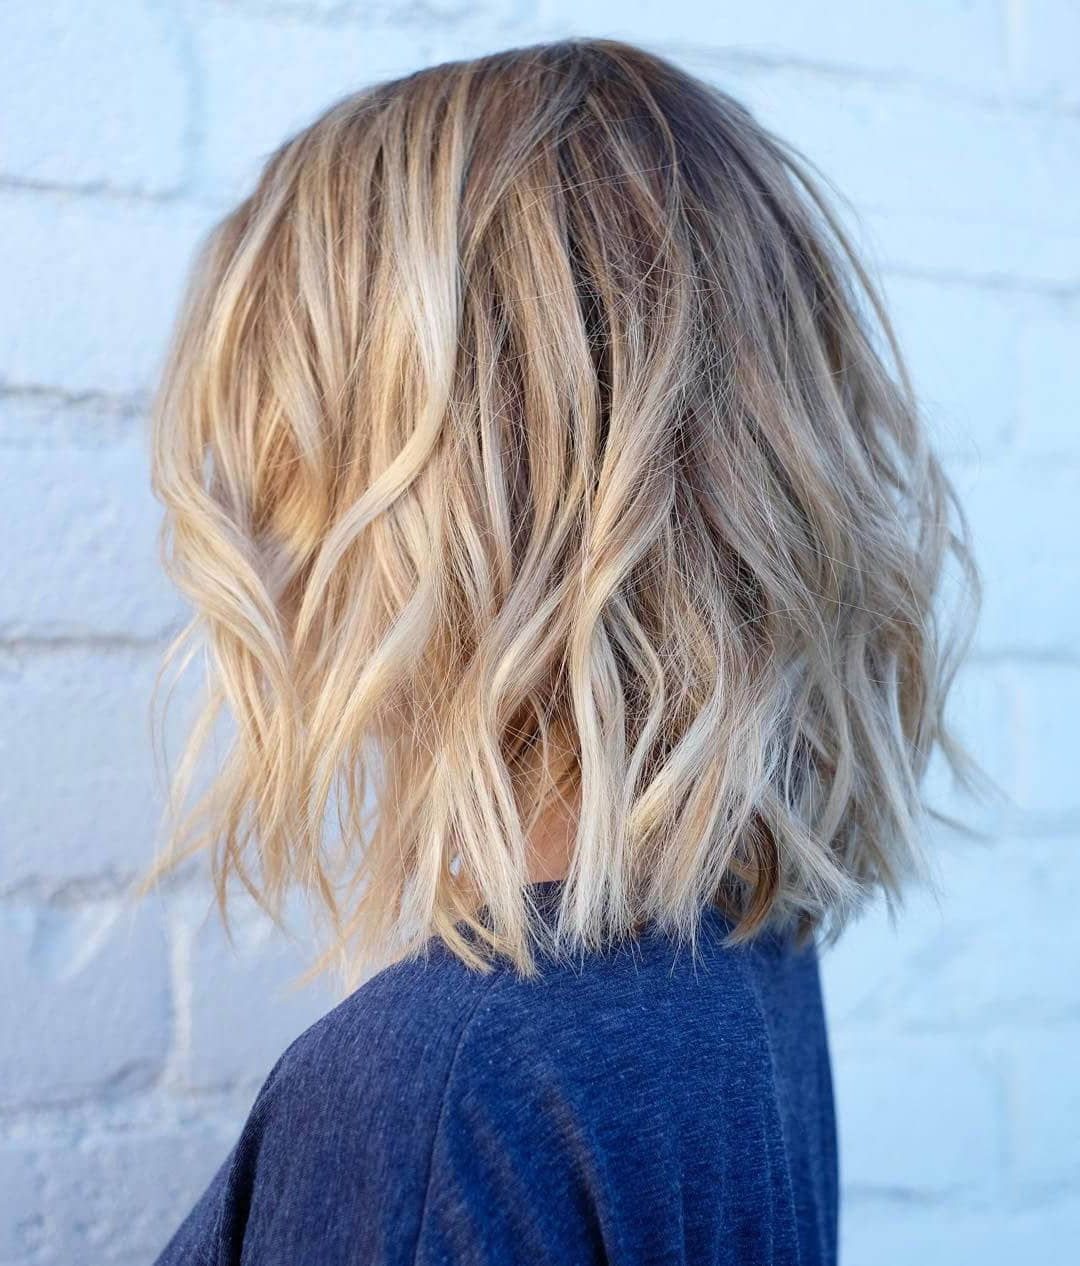 50 Fresh Short Blonde Hair Ideas To Update Your Style In 2018 Throughout Tousled Wavy Blonde Bob Hairstyles (View 13 of 25)